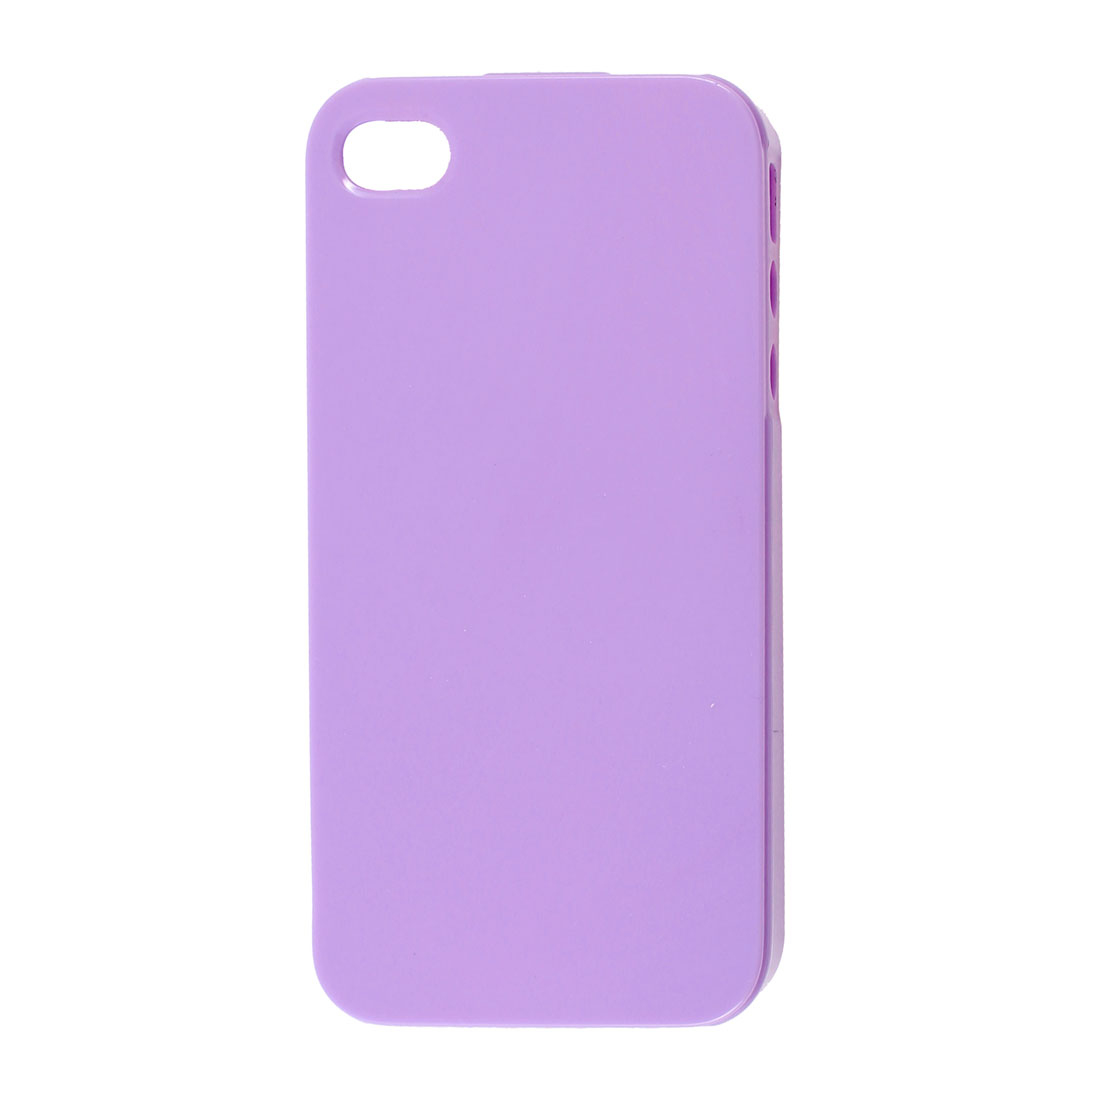 Solid Purple TPU Soft Plastic Protect Back Case Cover for iPhone 4 4G